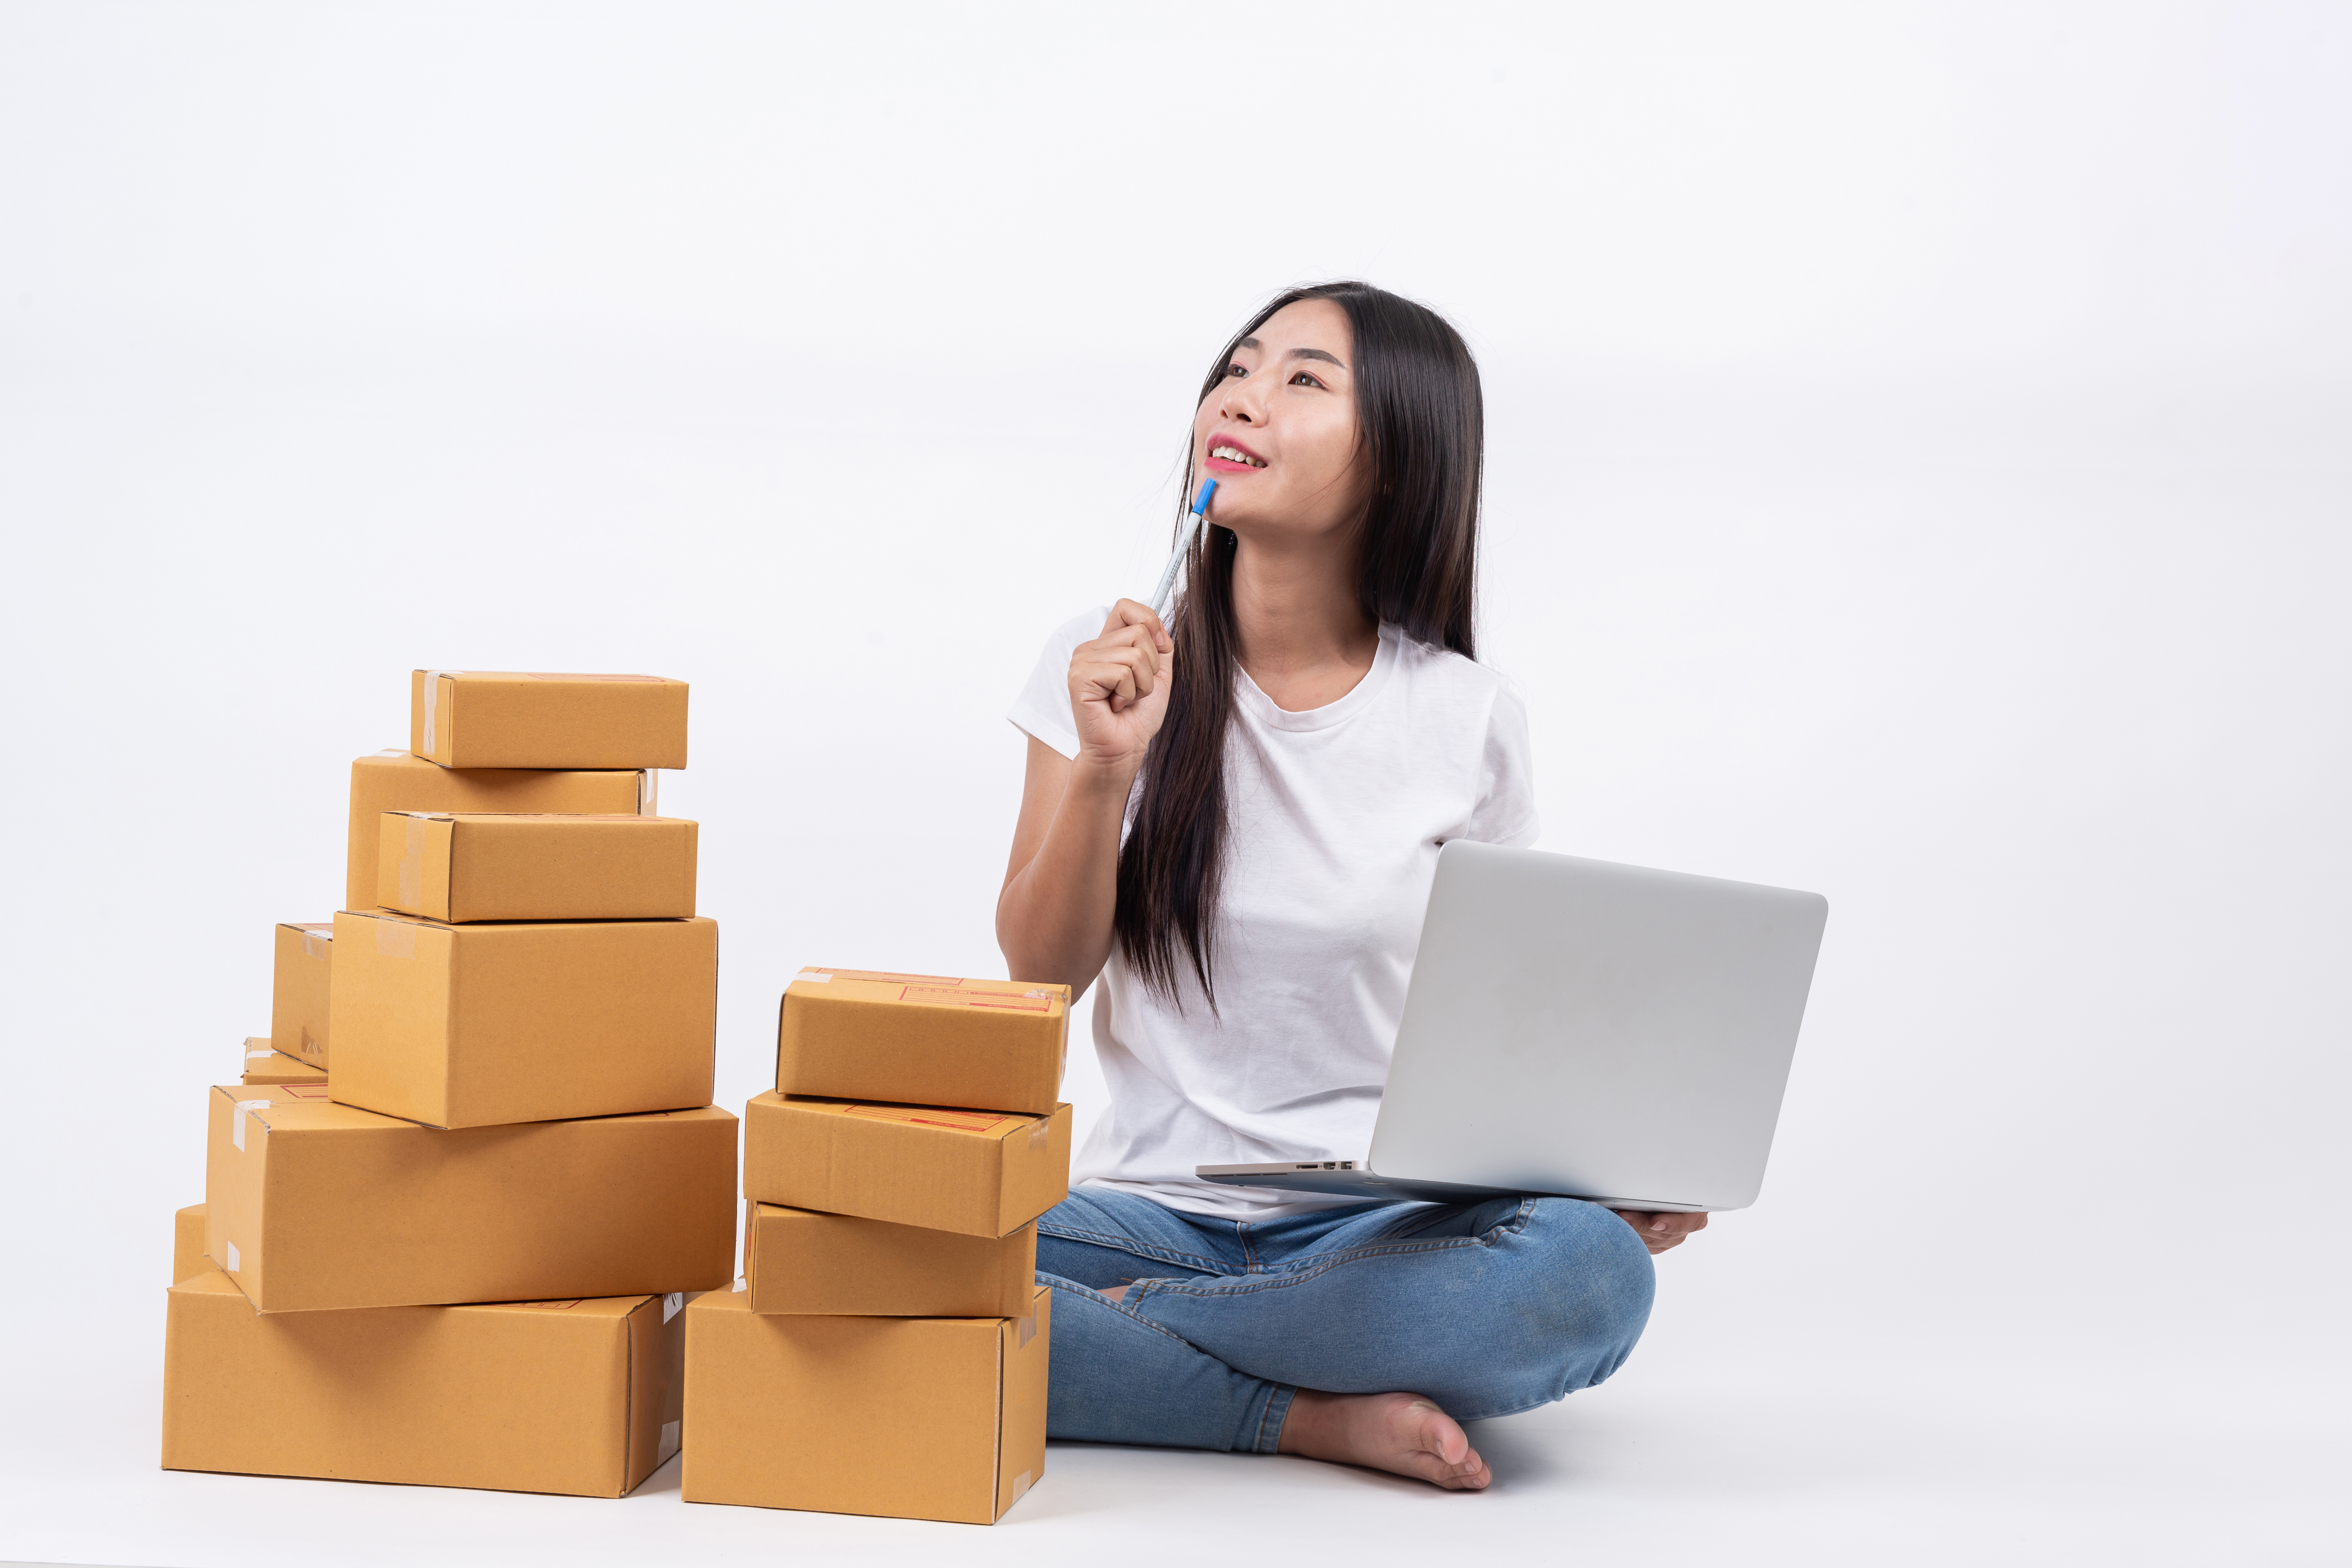 happy-women-who-are-thinking-white-blackground-online-shopping-business-operators-independent.jpg